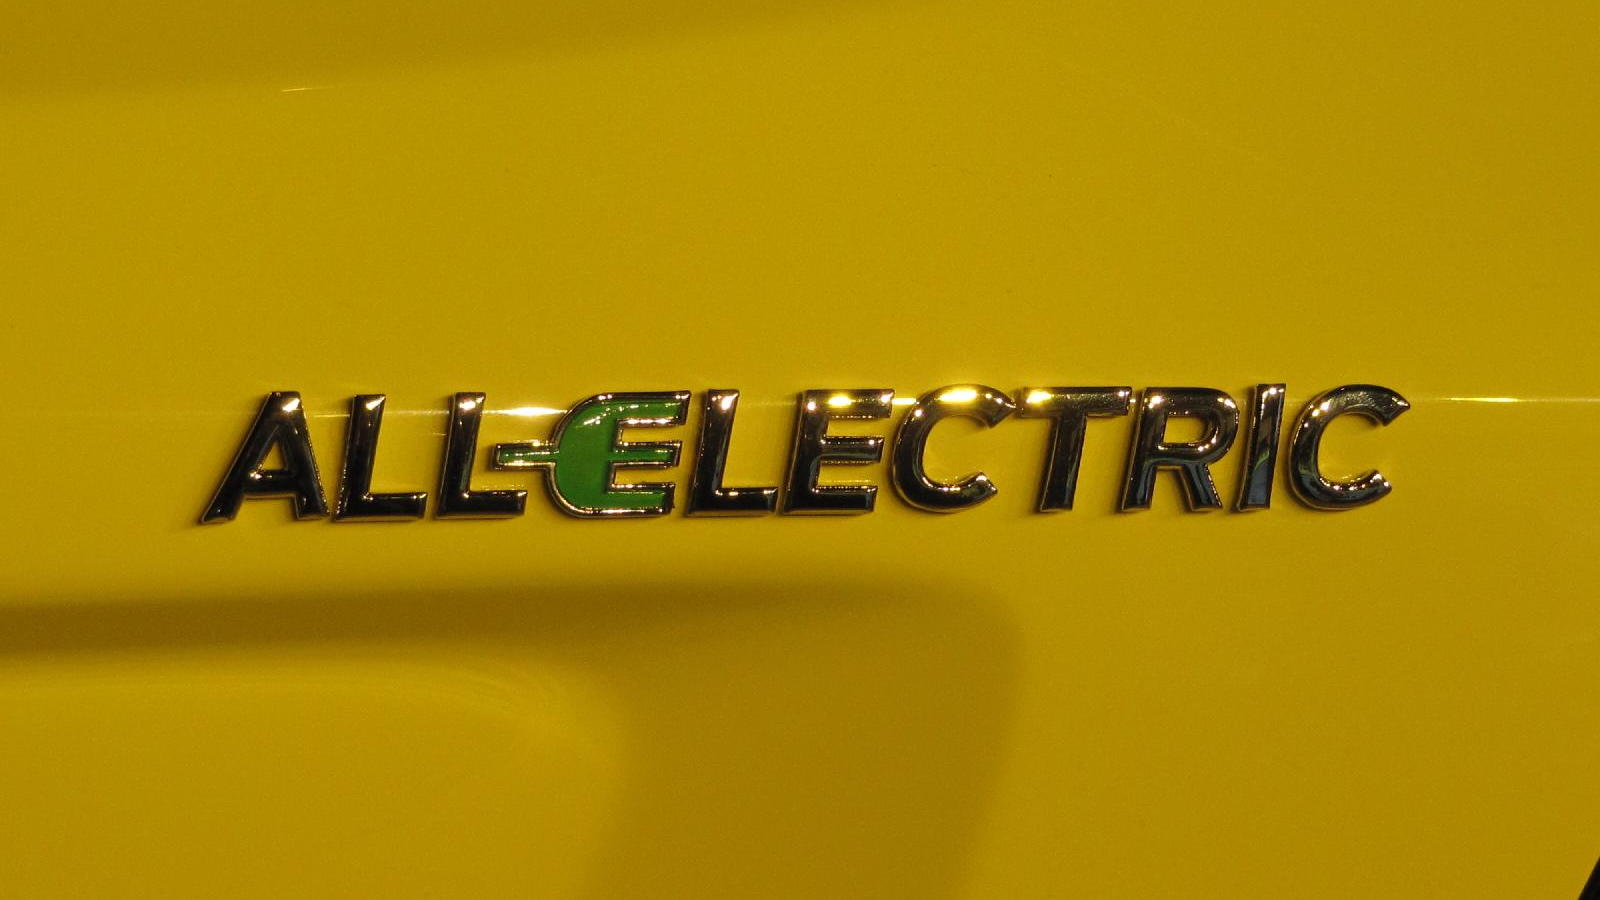 2011 Coda Sedan electric car, 'All Electric' badge, 2010 Los Angeles Auto Show